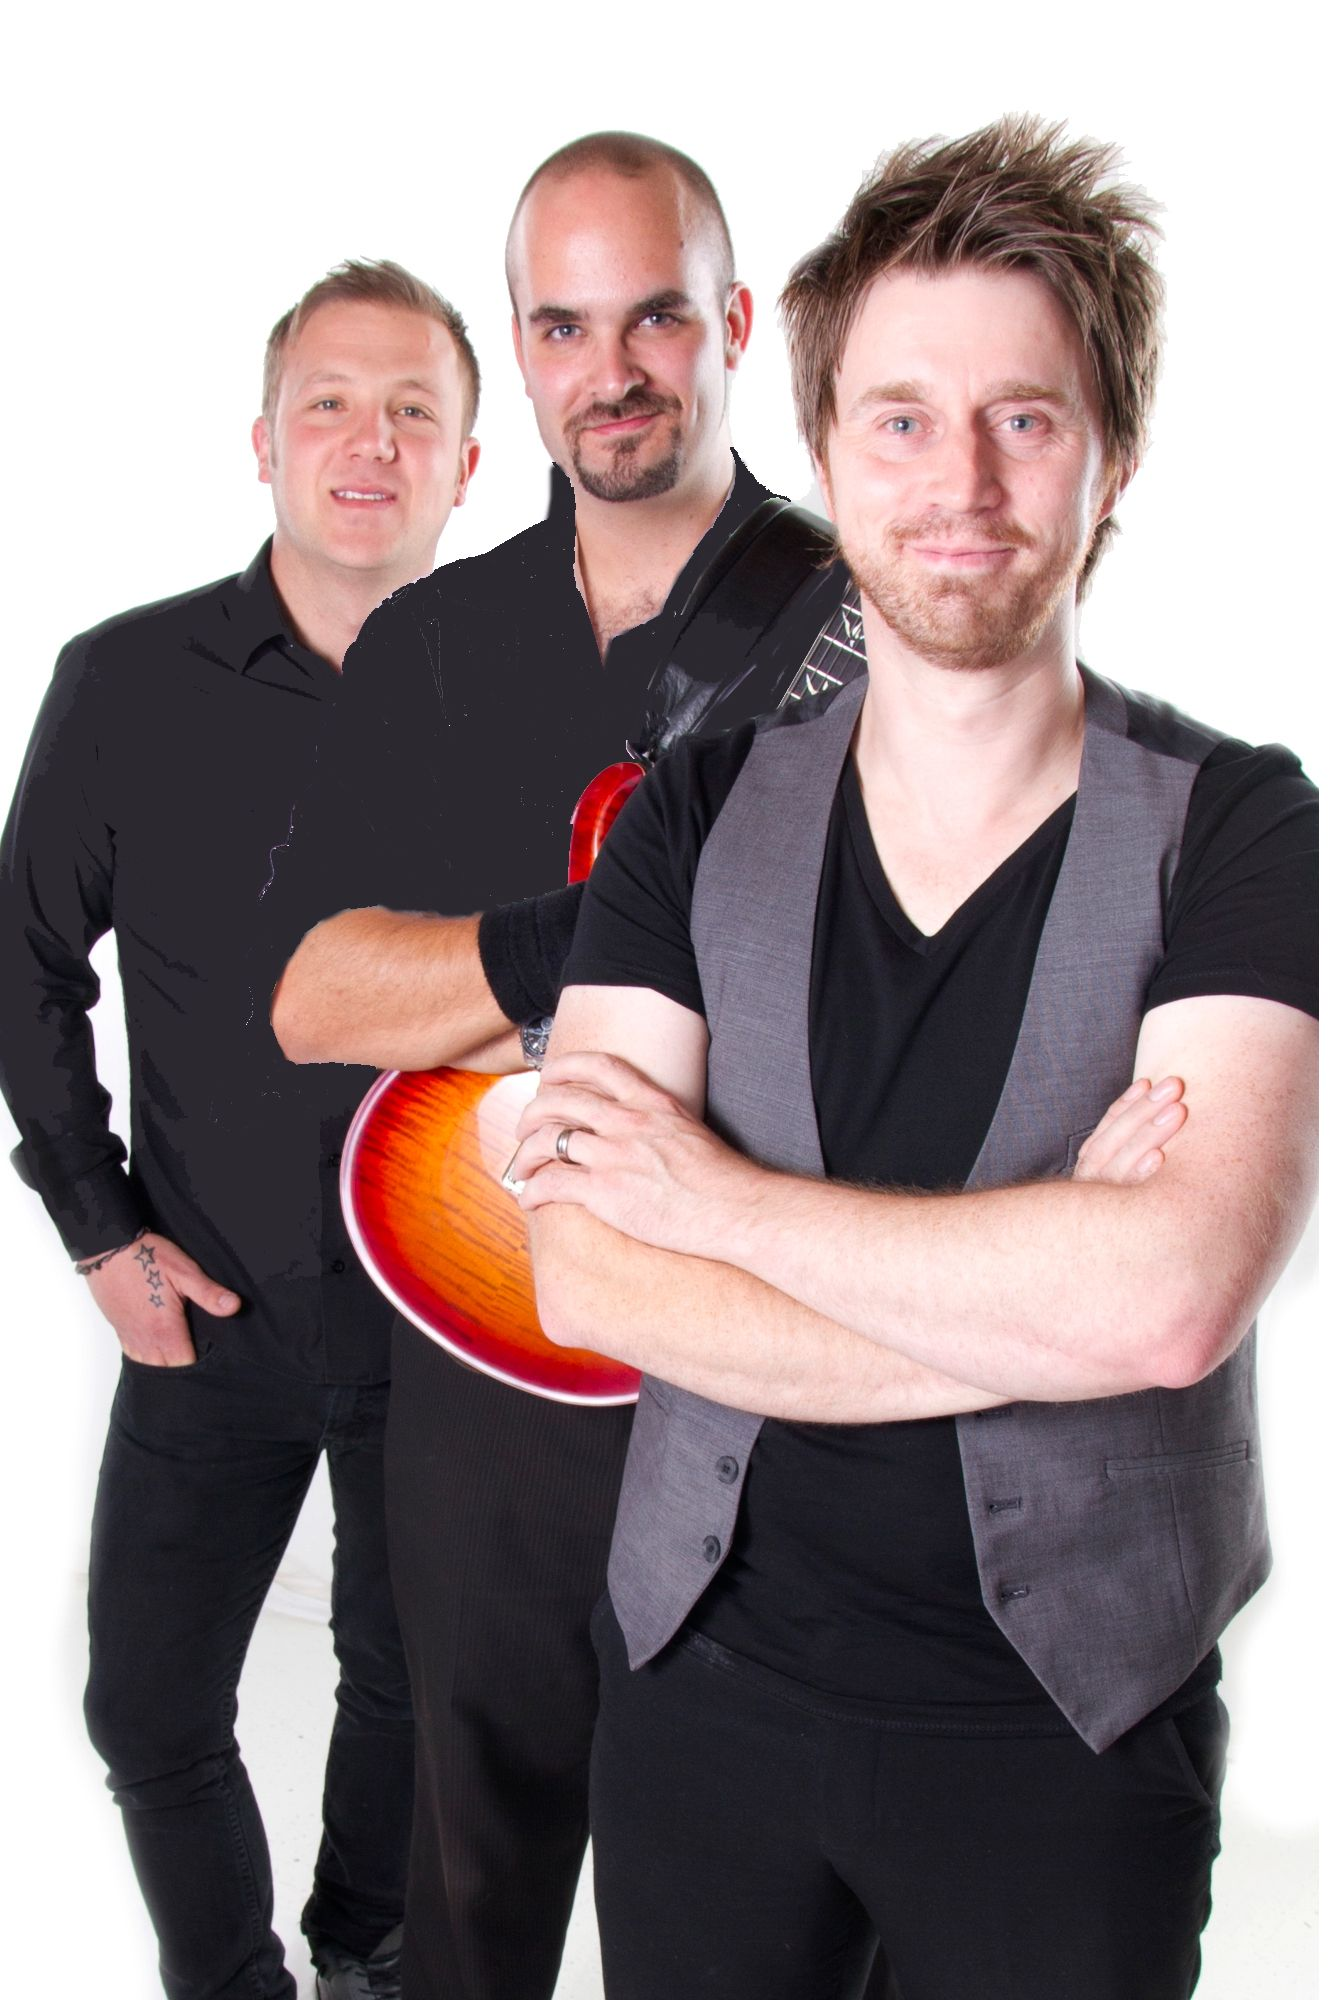 Need Wedding live bands? look at http//www